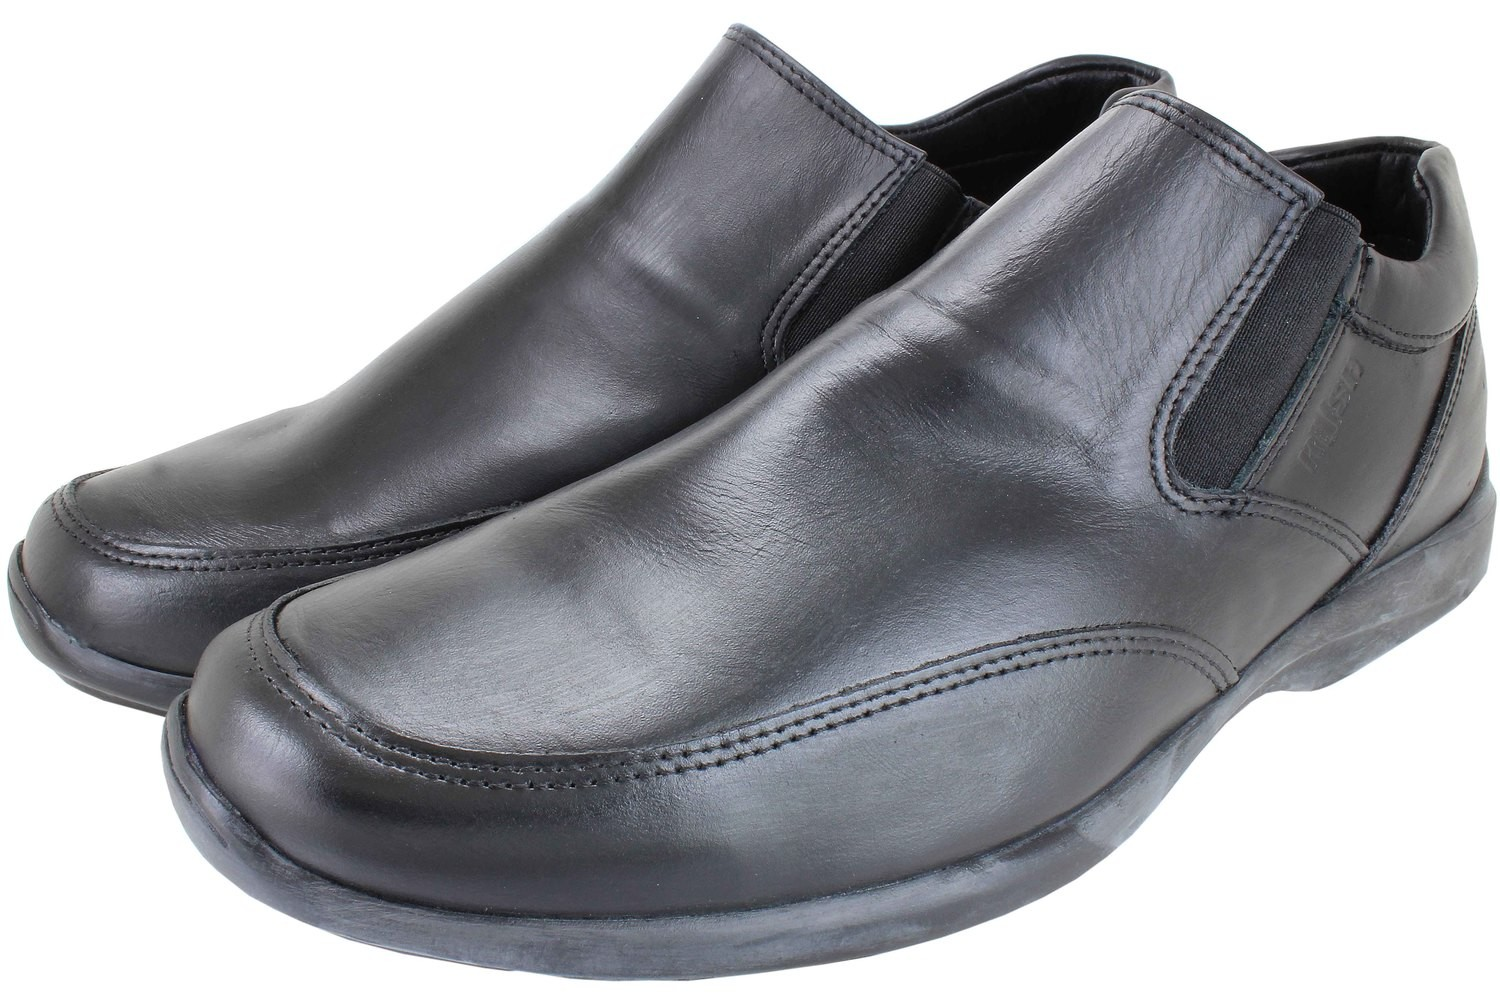 Mens Shoes Genuine Leather Black - SUGGESTED RETAIL PRICE $45.00 - WHOLESALE PRICE $9.5 - Minimum purchase 11